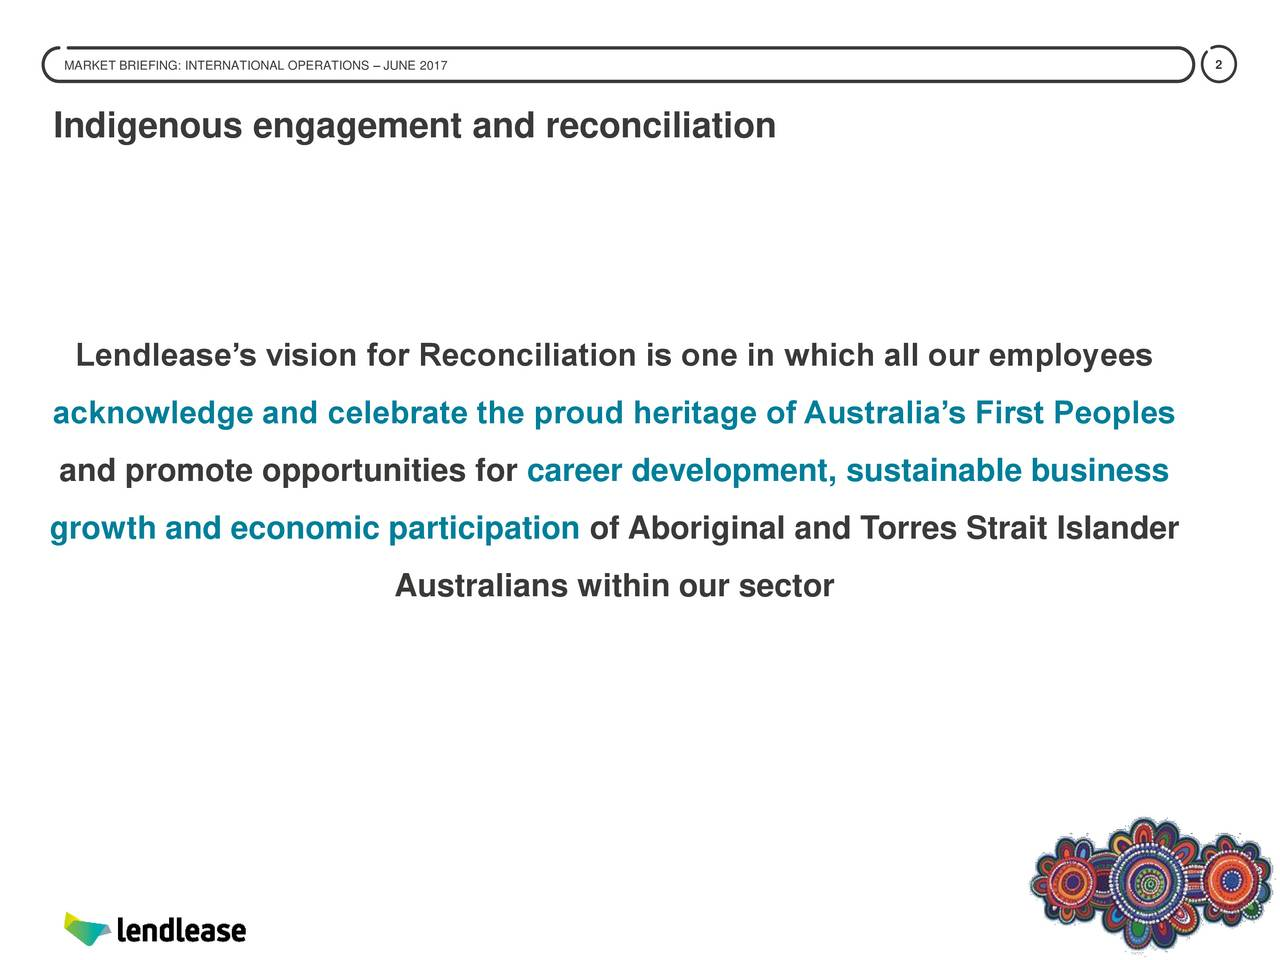 Indigenous engagement and reconciliation Lendleases vision for Reconciliation is one in which all our employees acknowledge and celebrate the proud heritage of Australias First Peoples and promote opportunities for career development, sustainable business growth and economic participation of Aboriginal and Torres Strait Islander Australians within our sector